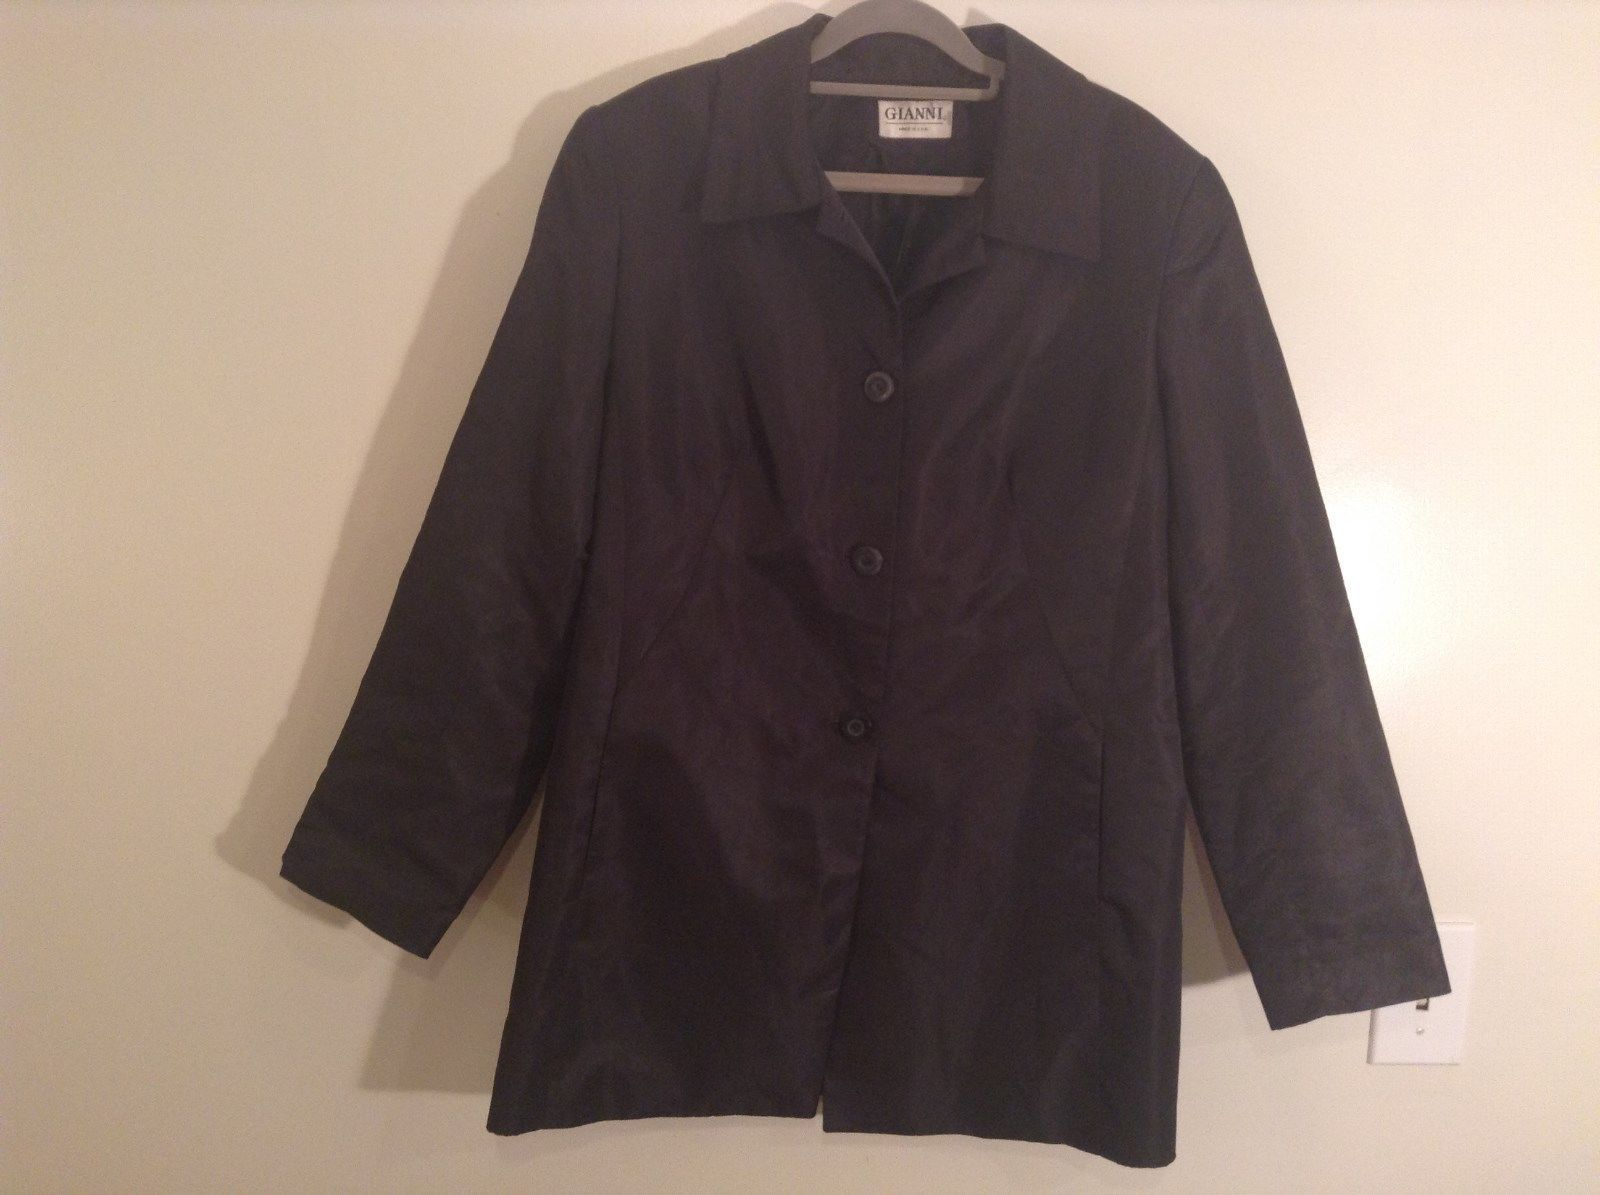 Black Gianni 3 Button Closure 100 Percent Polyester Jacket Size 14 Made in USA